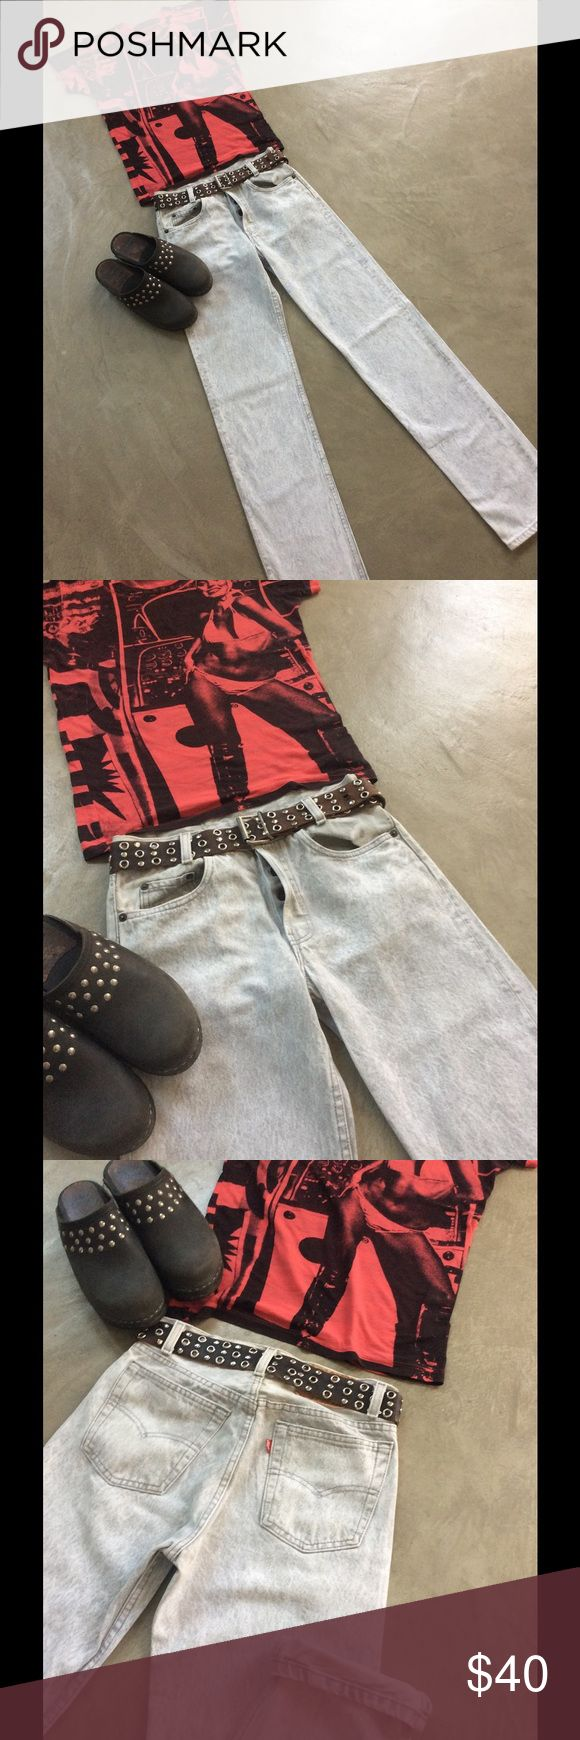 """Vintage button fly acid wash Levi jeans From the 80's- 90's, in excellent condition these are original high waisted pale gray acid wash Levis. Great with flip flops and tee or boots and a leather. Waist measures 26"""" and length 33,5"""" Vintage Levis Jeans Straight Leg"""